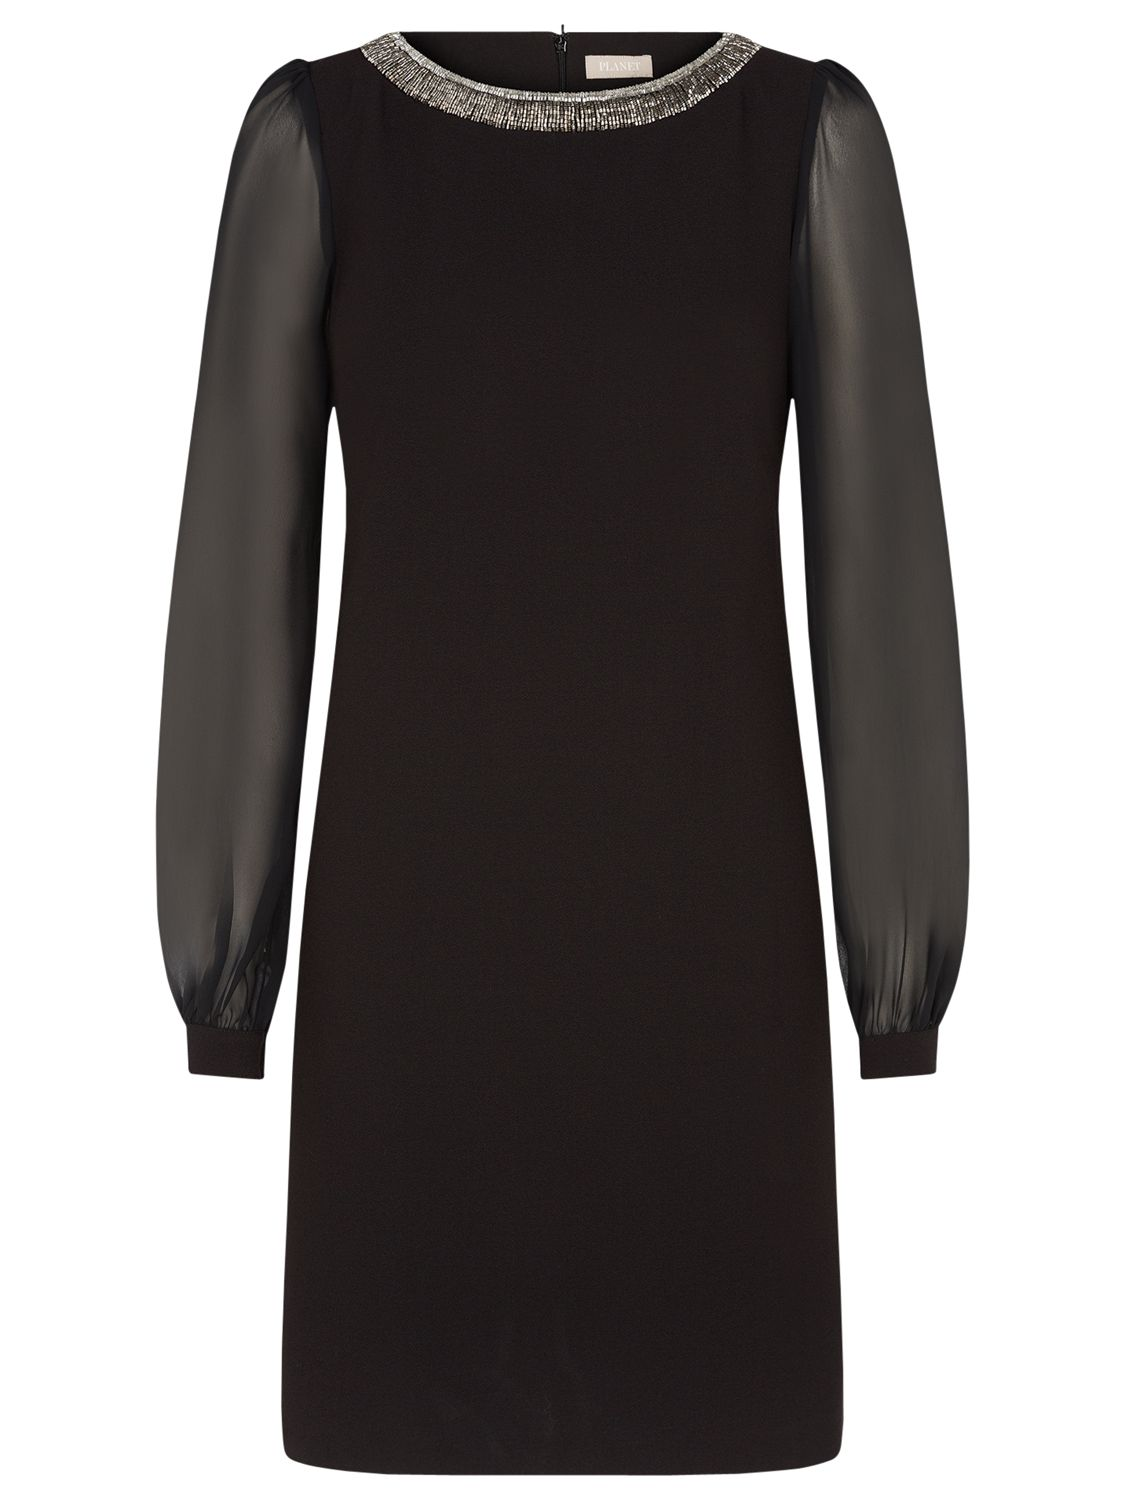 planet bead trim tunic black, planet, bead, trim, tunic, black, 18|8, women, inactive womenswear, new reductions, womens dresses, special offers, womenswear offers, womens tops offers, womens dresses offers, clearance, 1725382